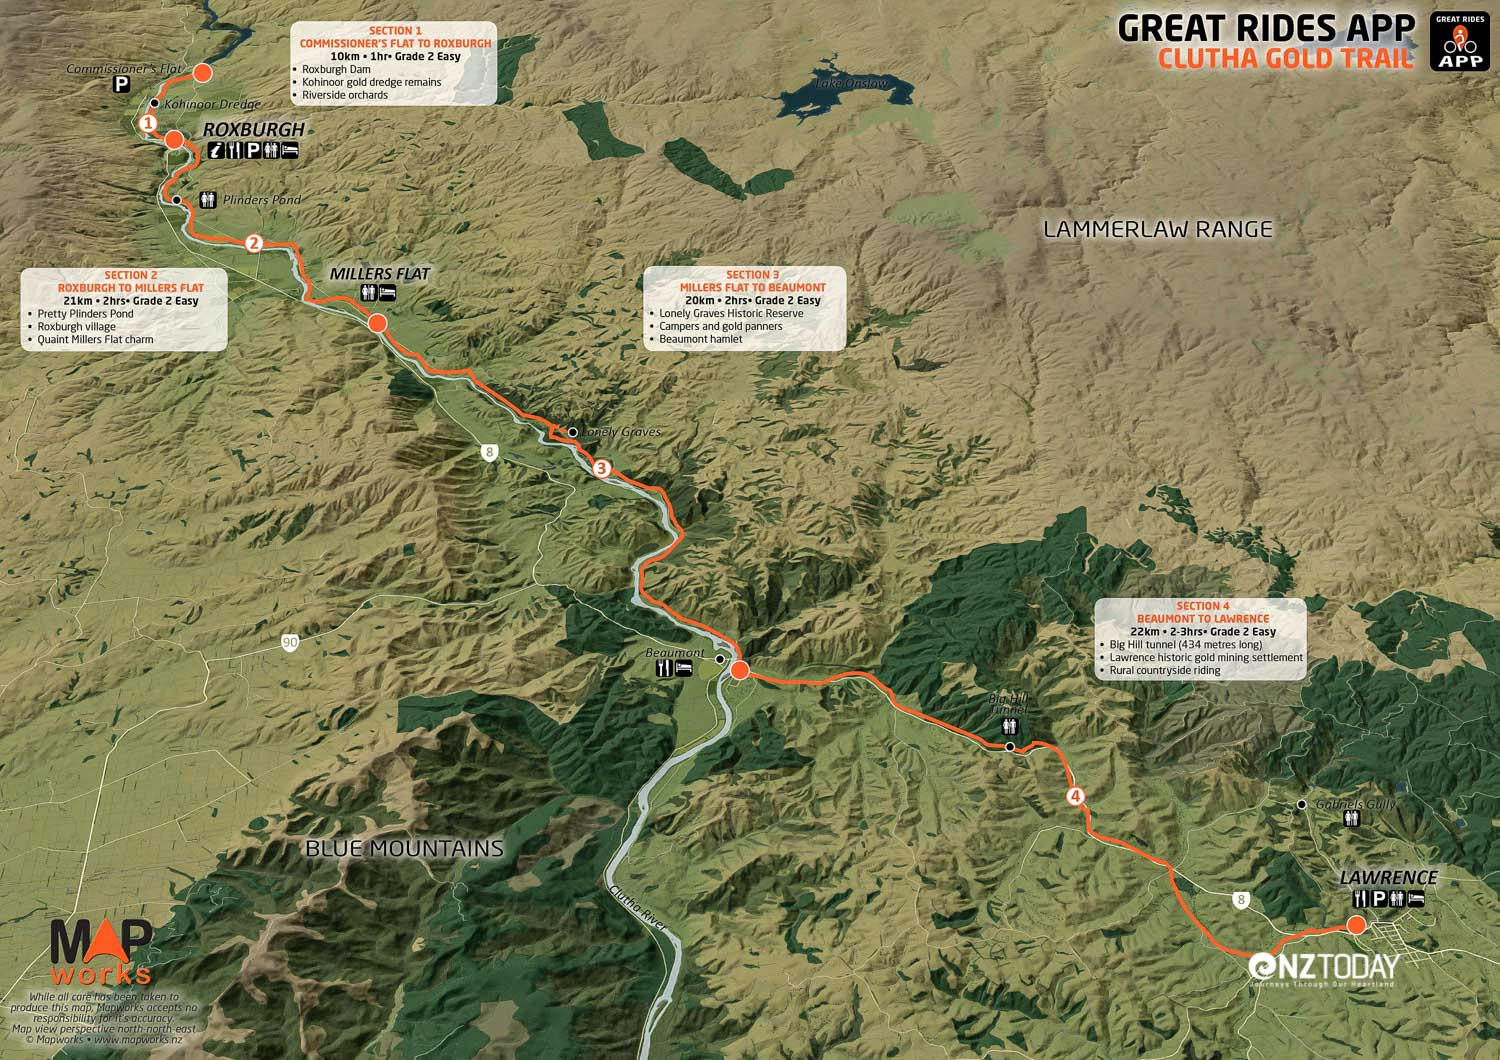 Overview map of the Clutha Gold Trail